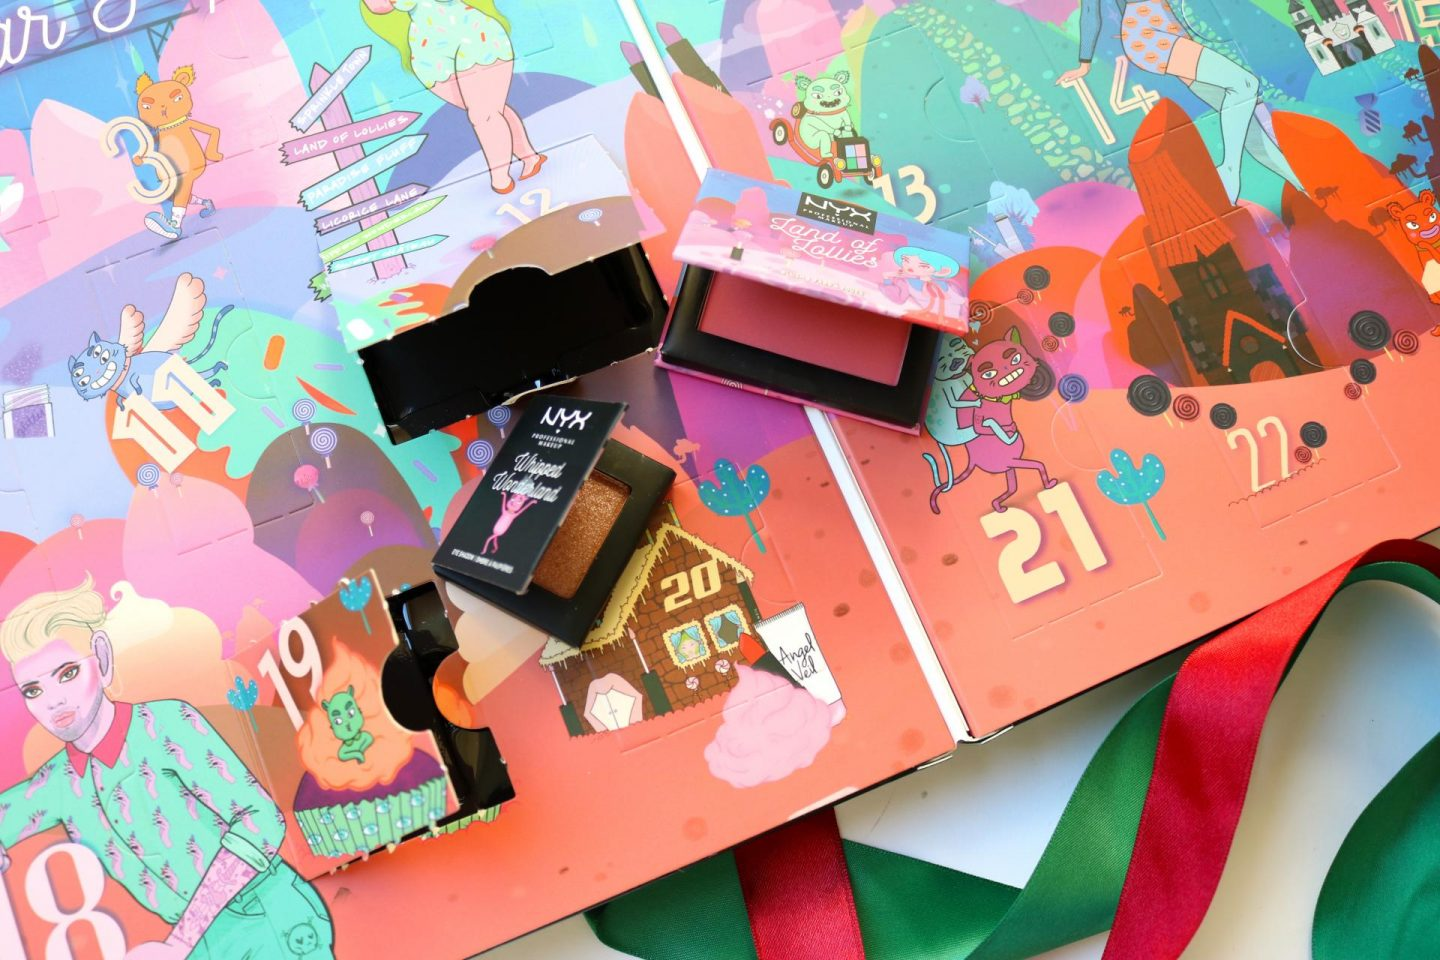 nycosmetics-aveda-yves-rocher-loccitane-advent-calendar-review_7069